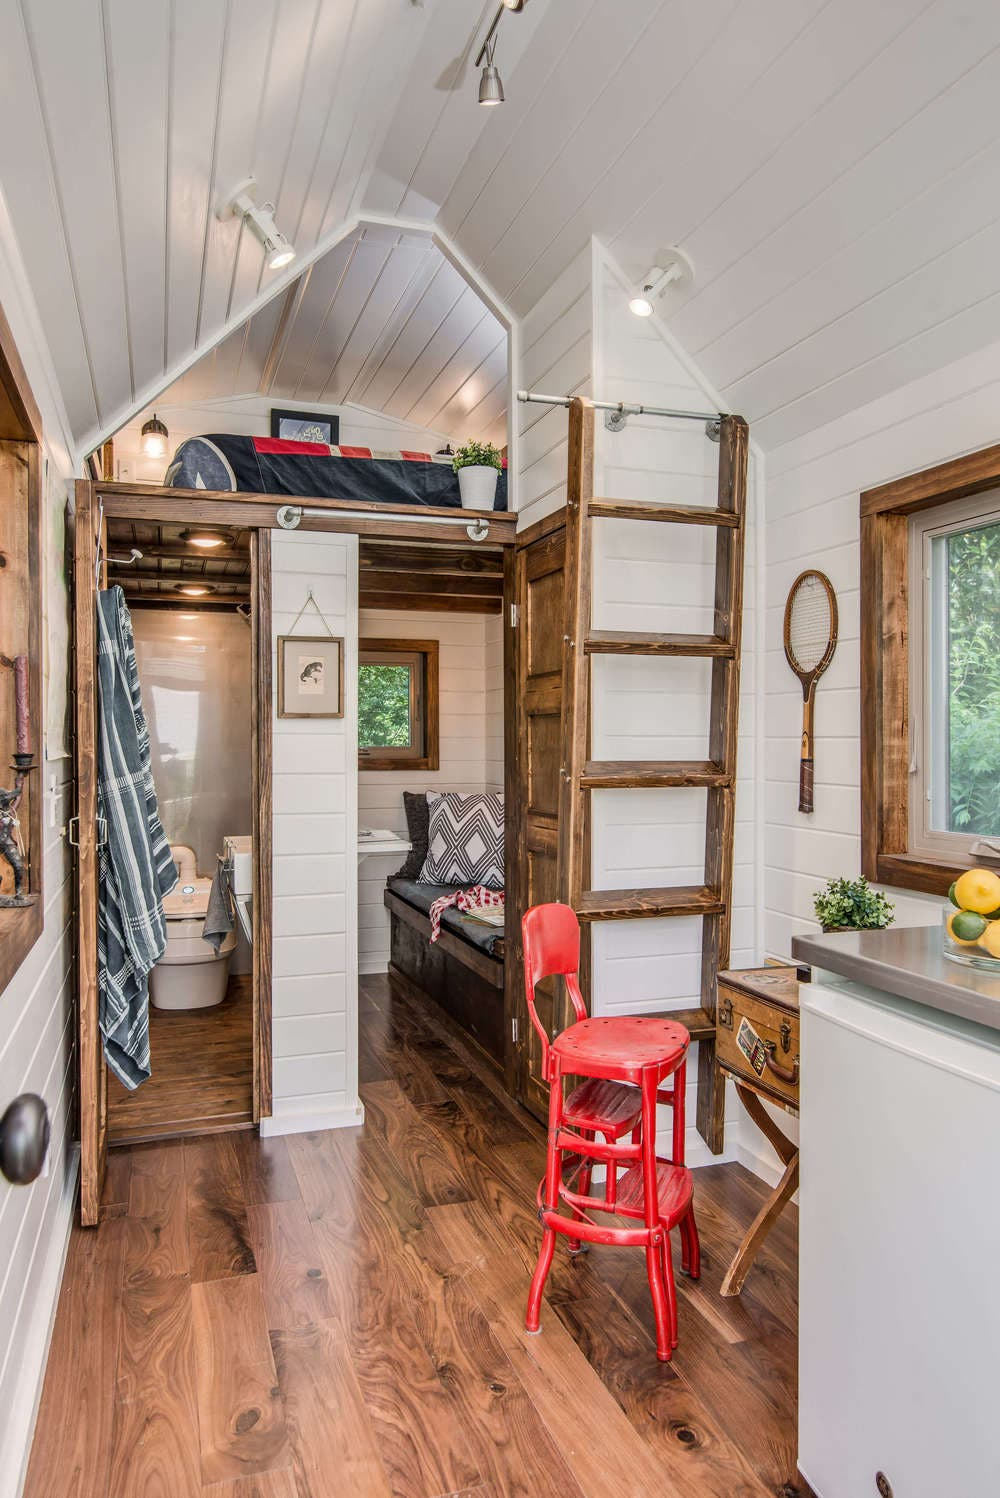 A Home That S Modern Inside And Out: Cedar Mountain Tiny House Affordable Option From New